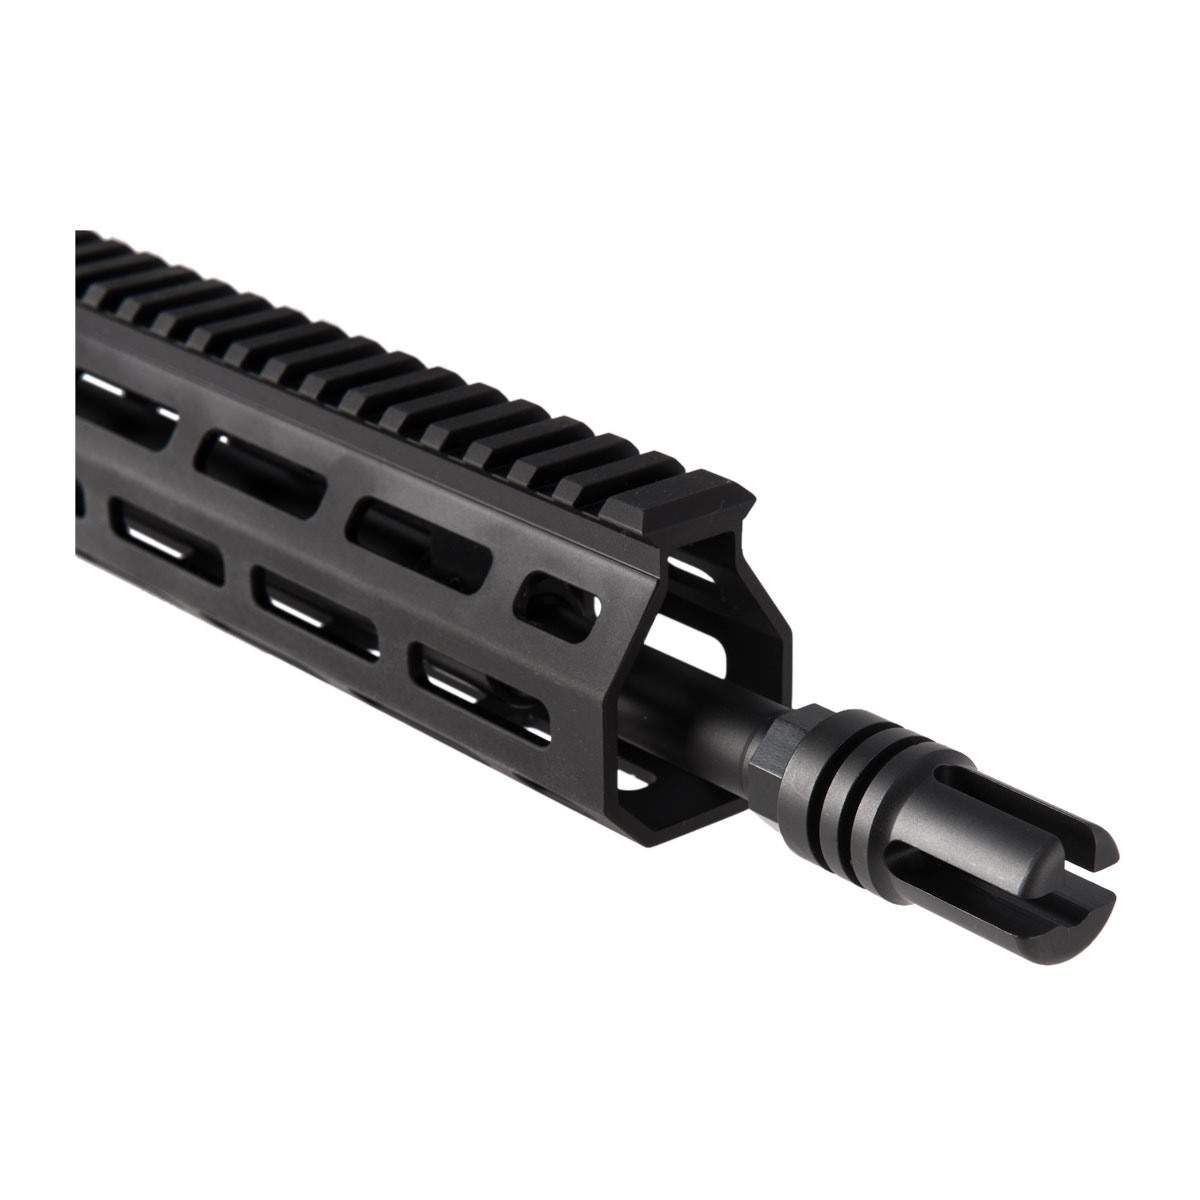 BROWNELLS BRN-180™ AR-15 COMPLETE UPPER RECEIVER ASSEMBLY